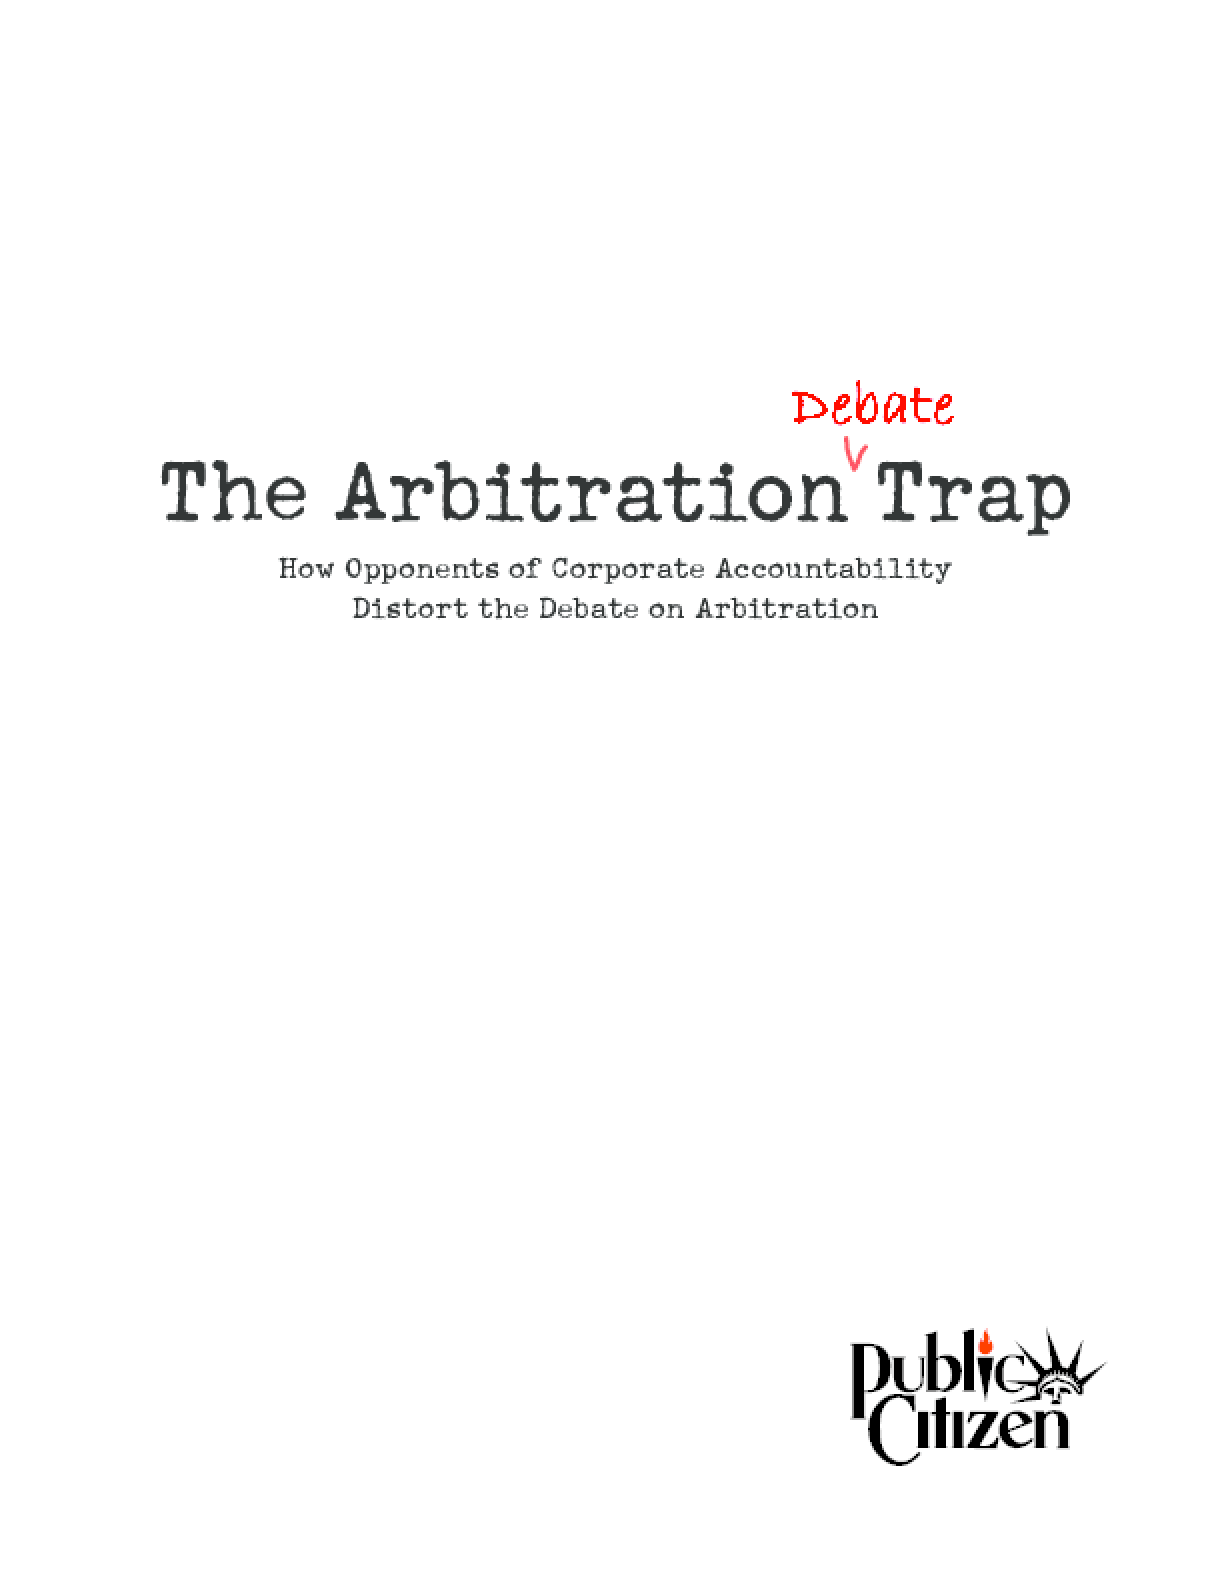 The Arbitration Debate Trap: How Opponents of Corporate Accountability Distort the Debate on Arbitration